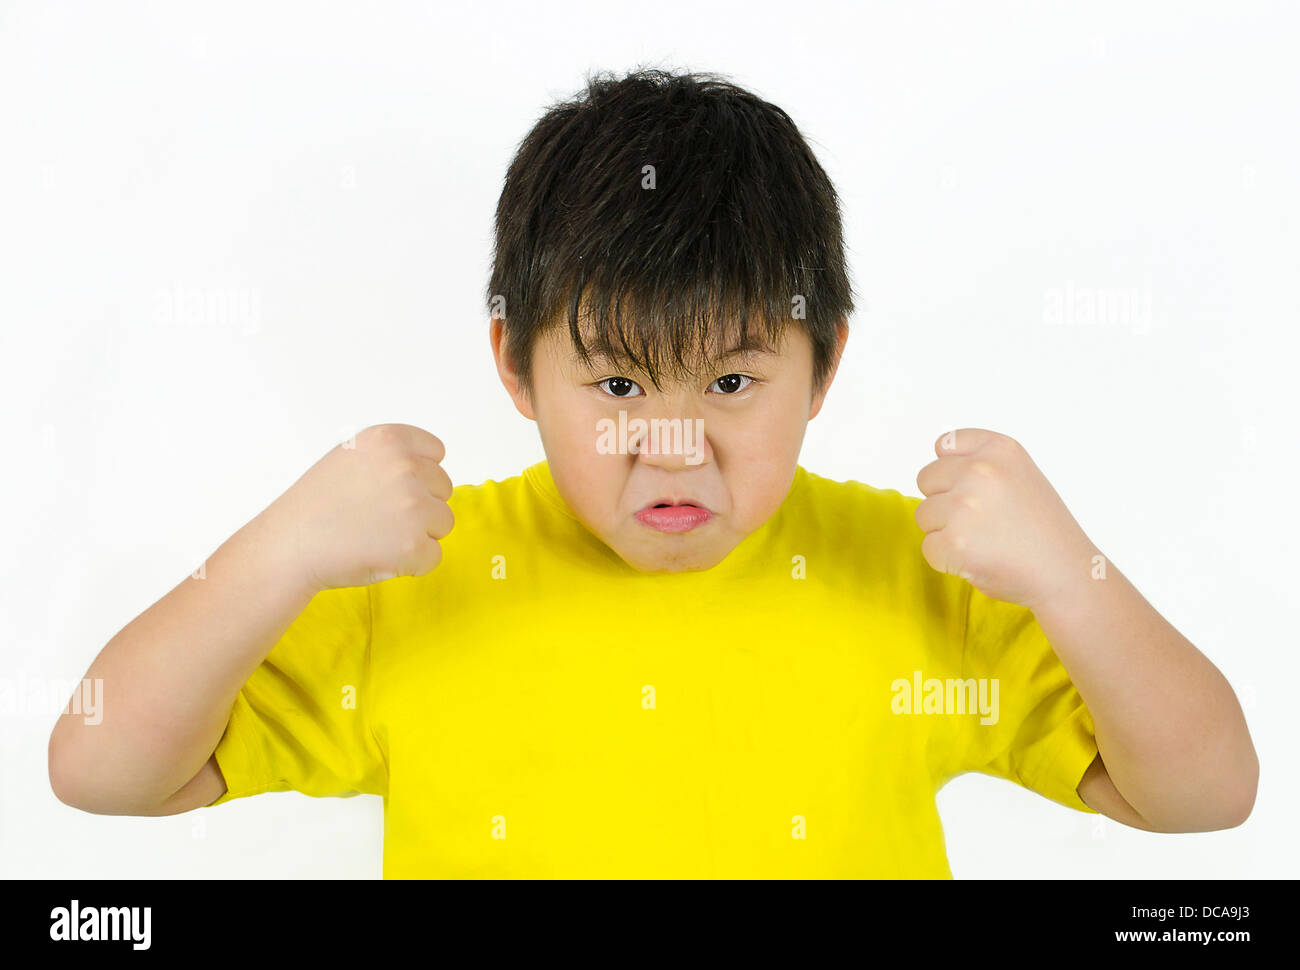 an angry child showing his temper and fists - Stock Image